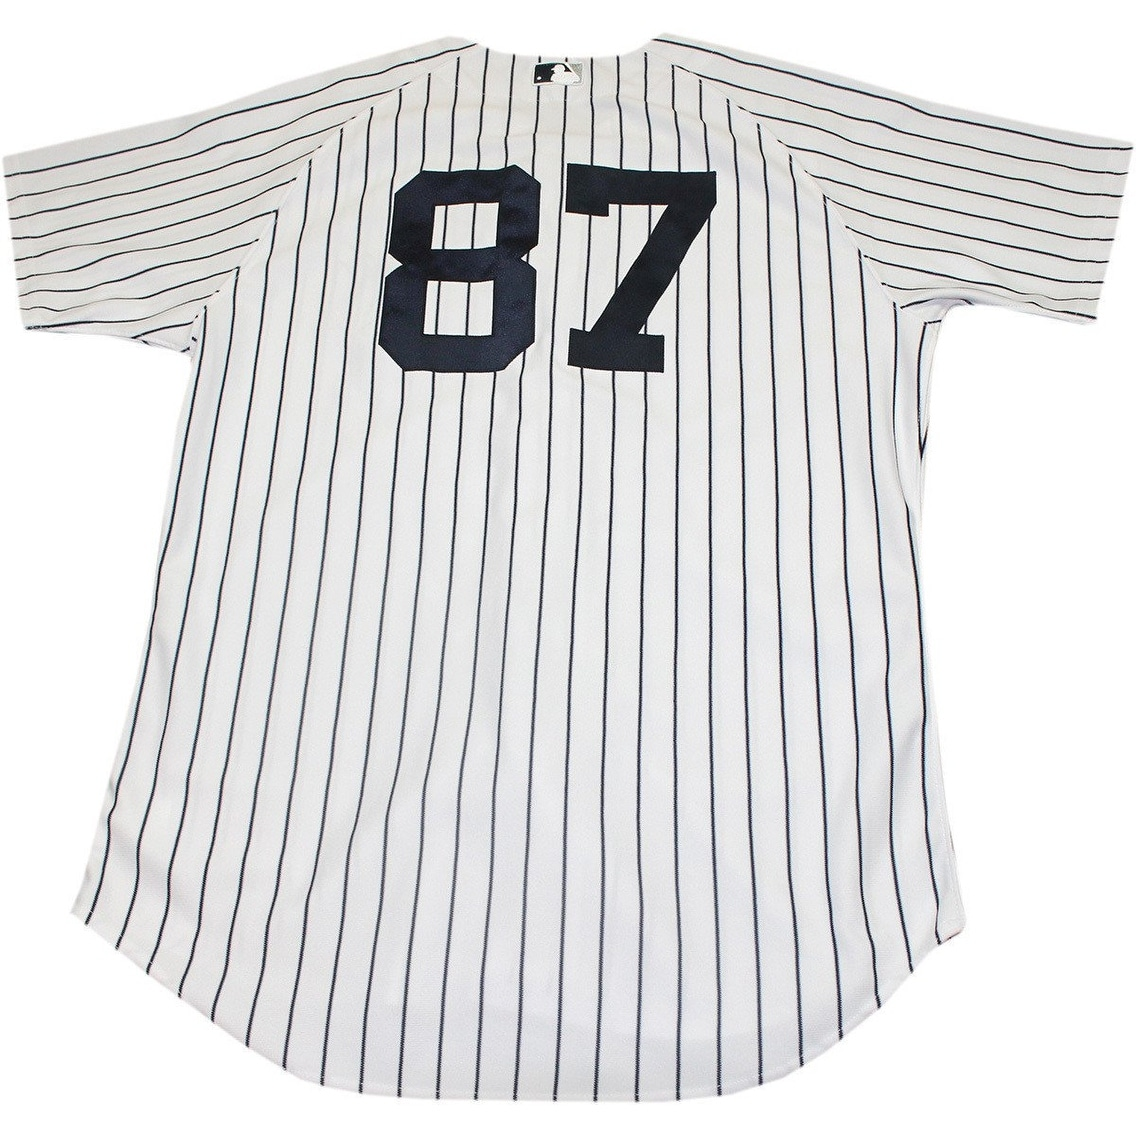 size 40 2b193 d7305 Francisco Arcia Jersey NY Yankees 2014 Spring Training Opening Day Game  Used 87 Pinstripe Jersey